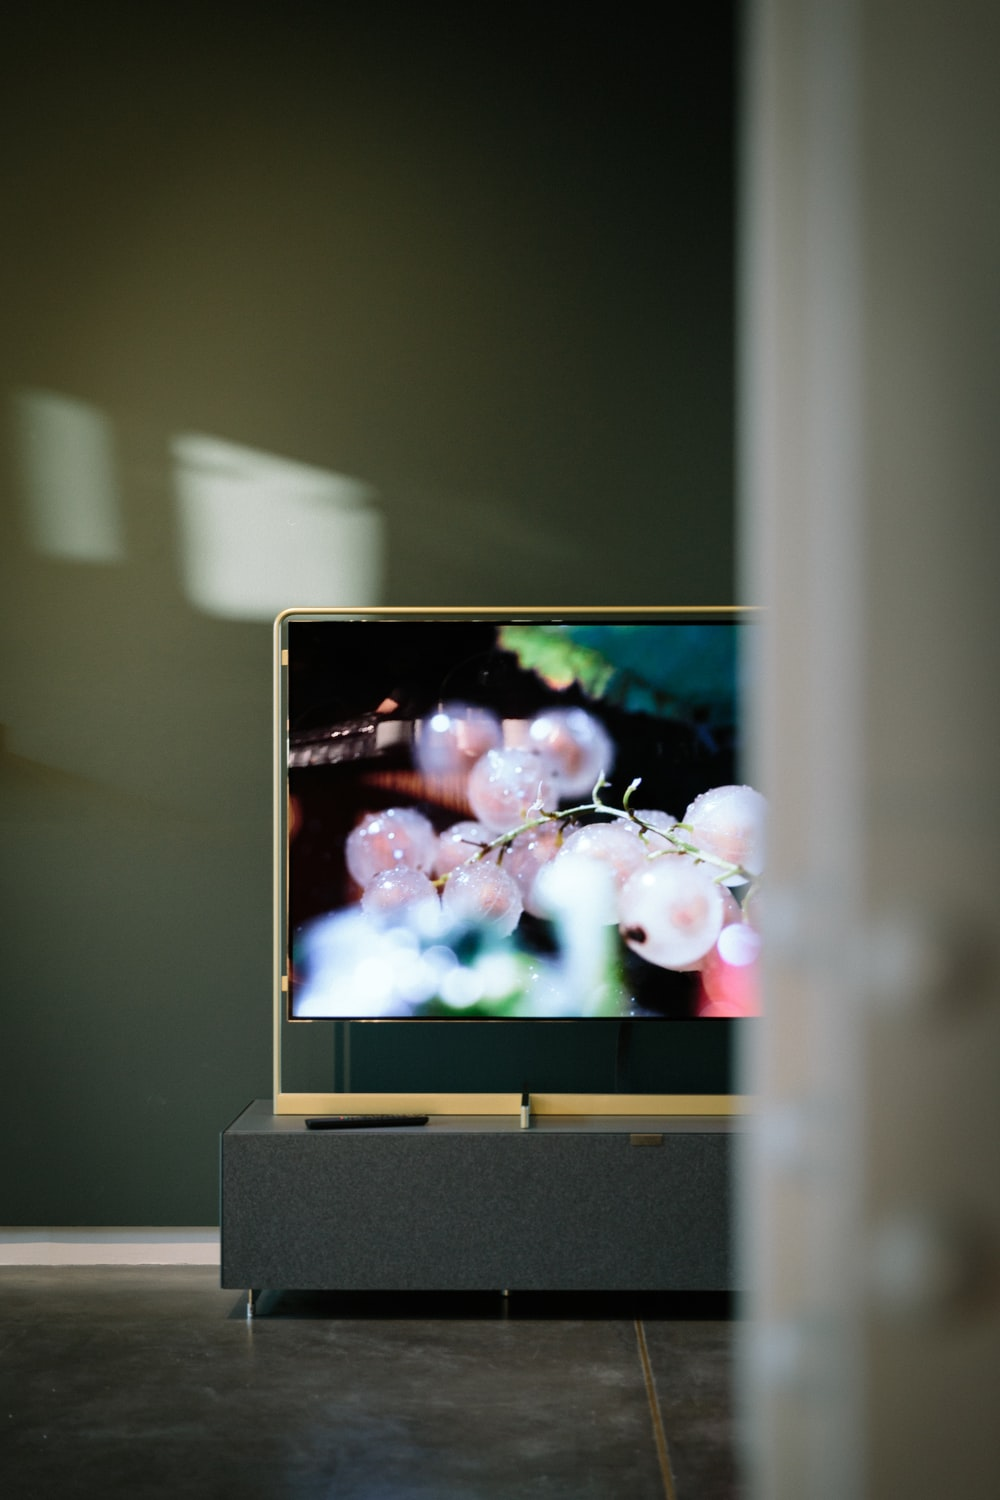 TV displaying cherries